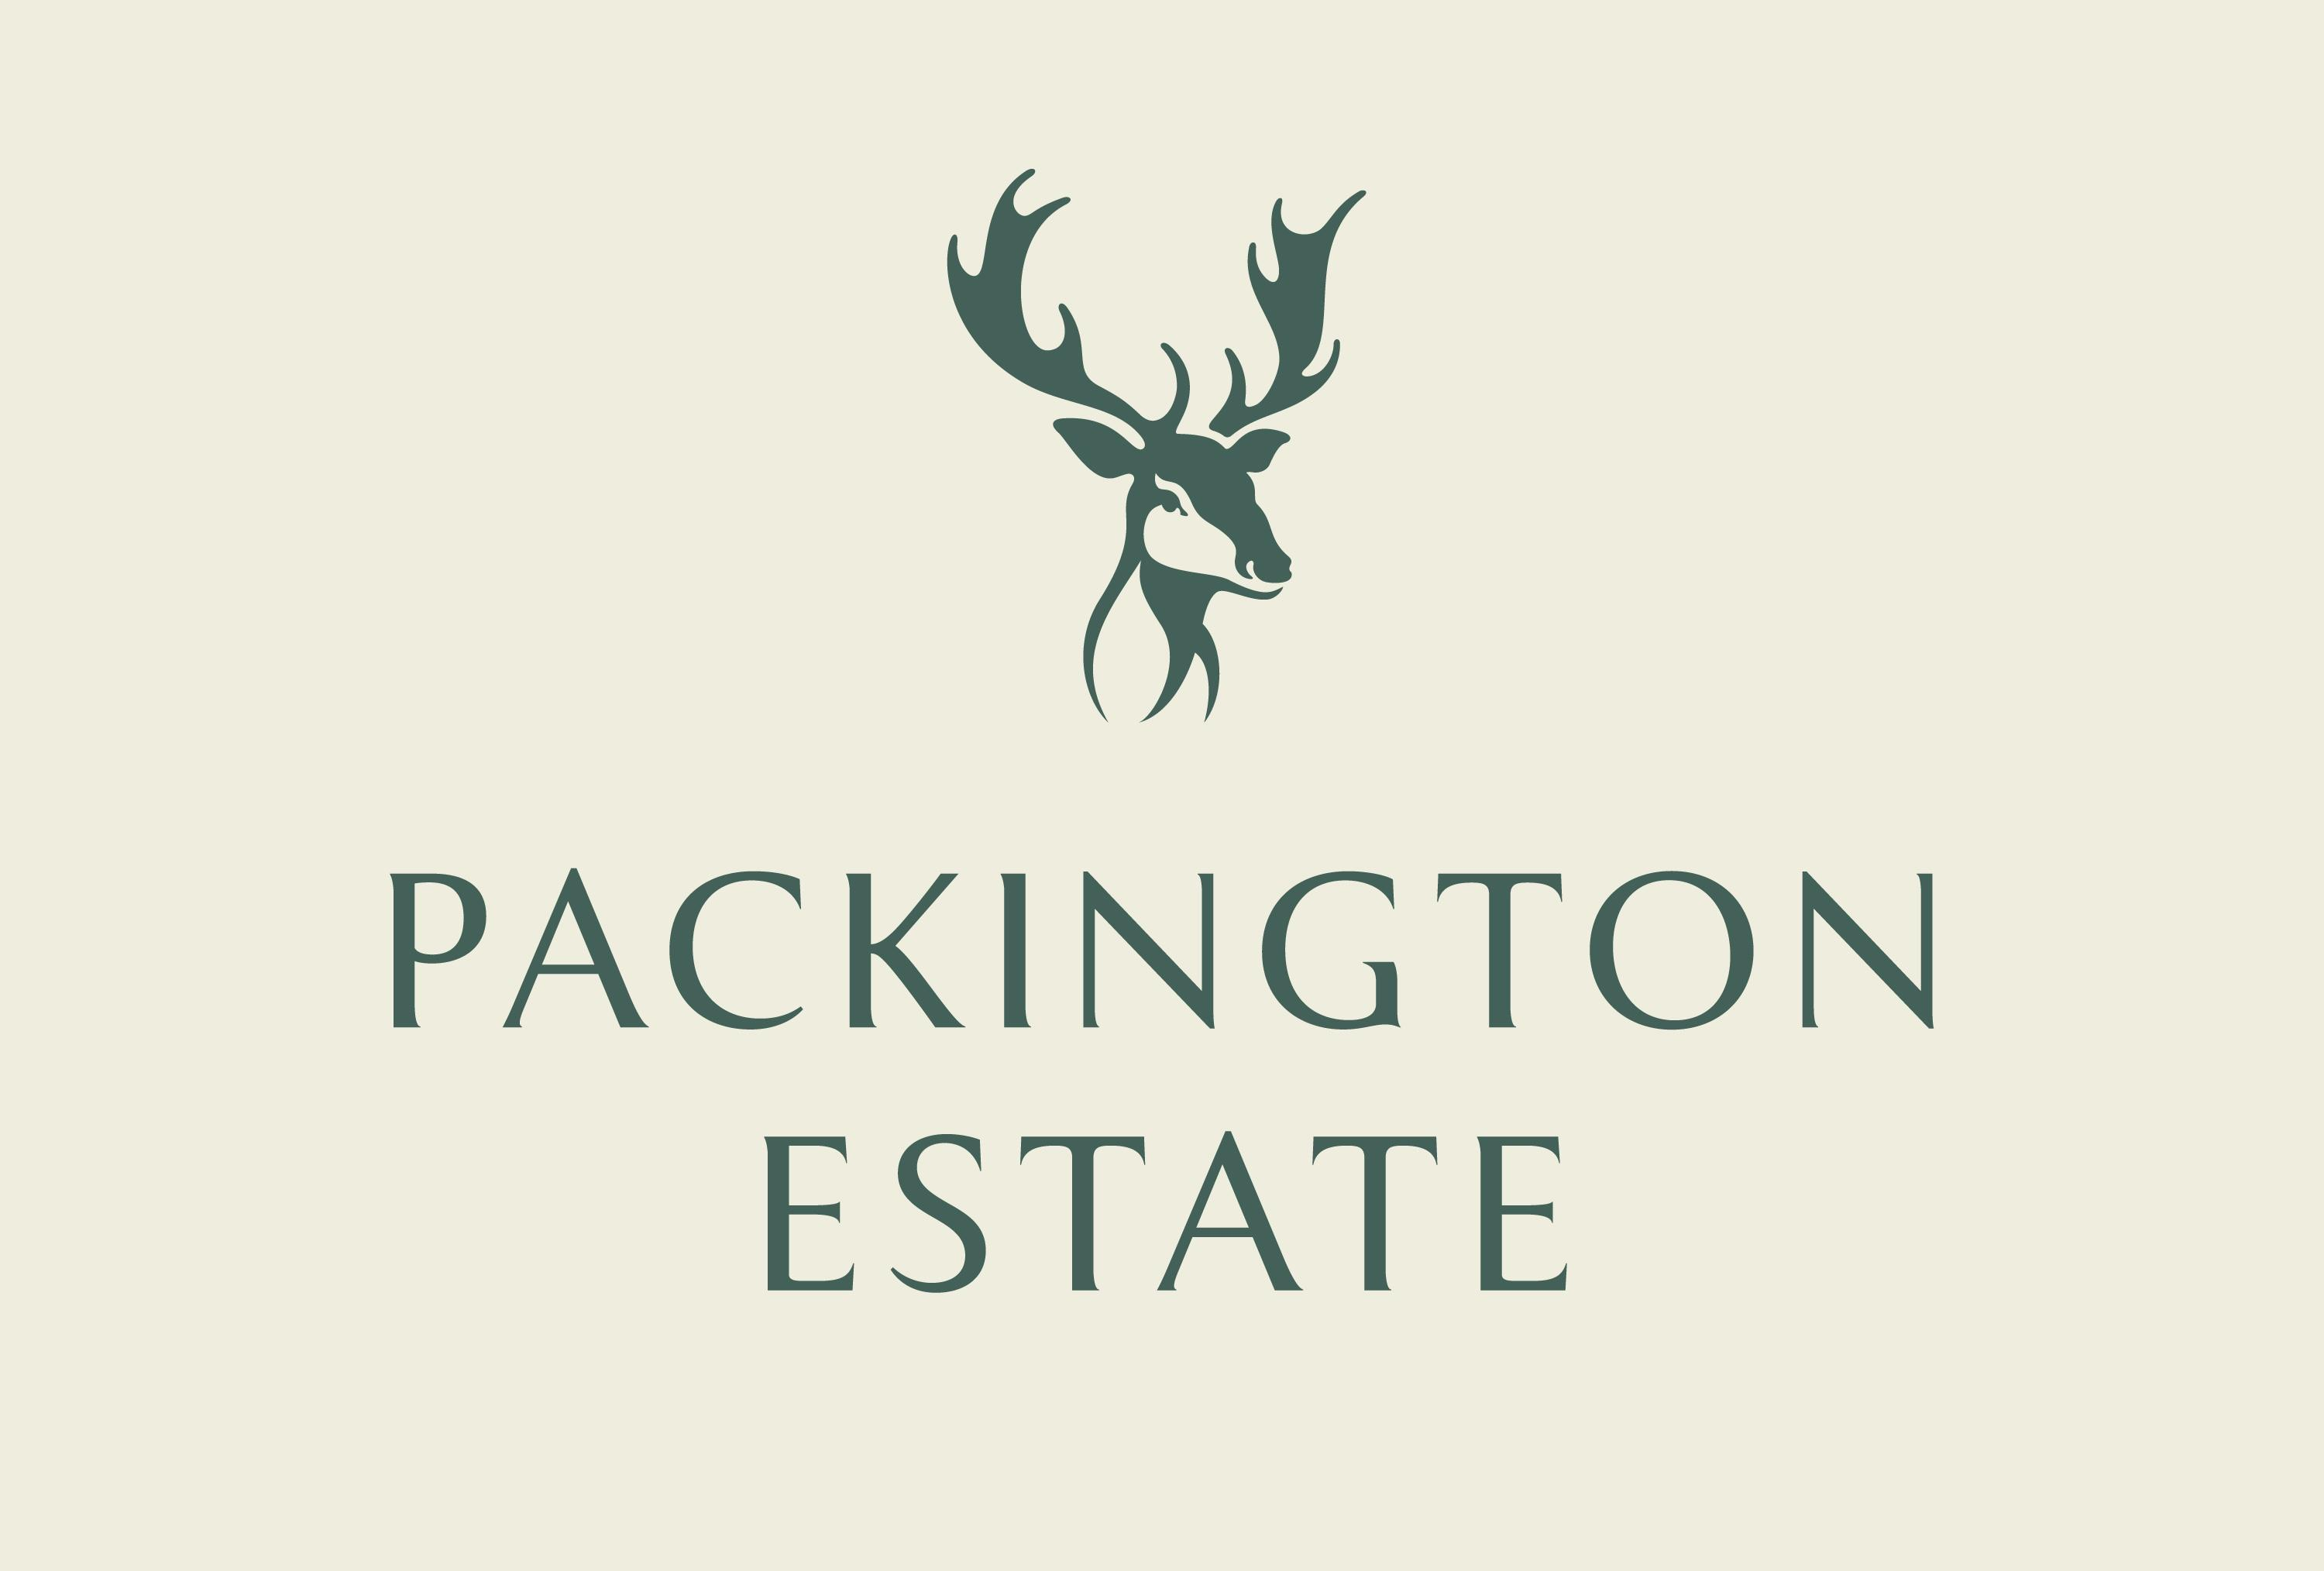 PACKINGTON ESTATE